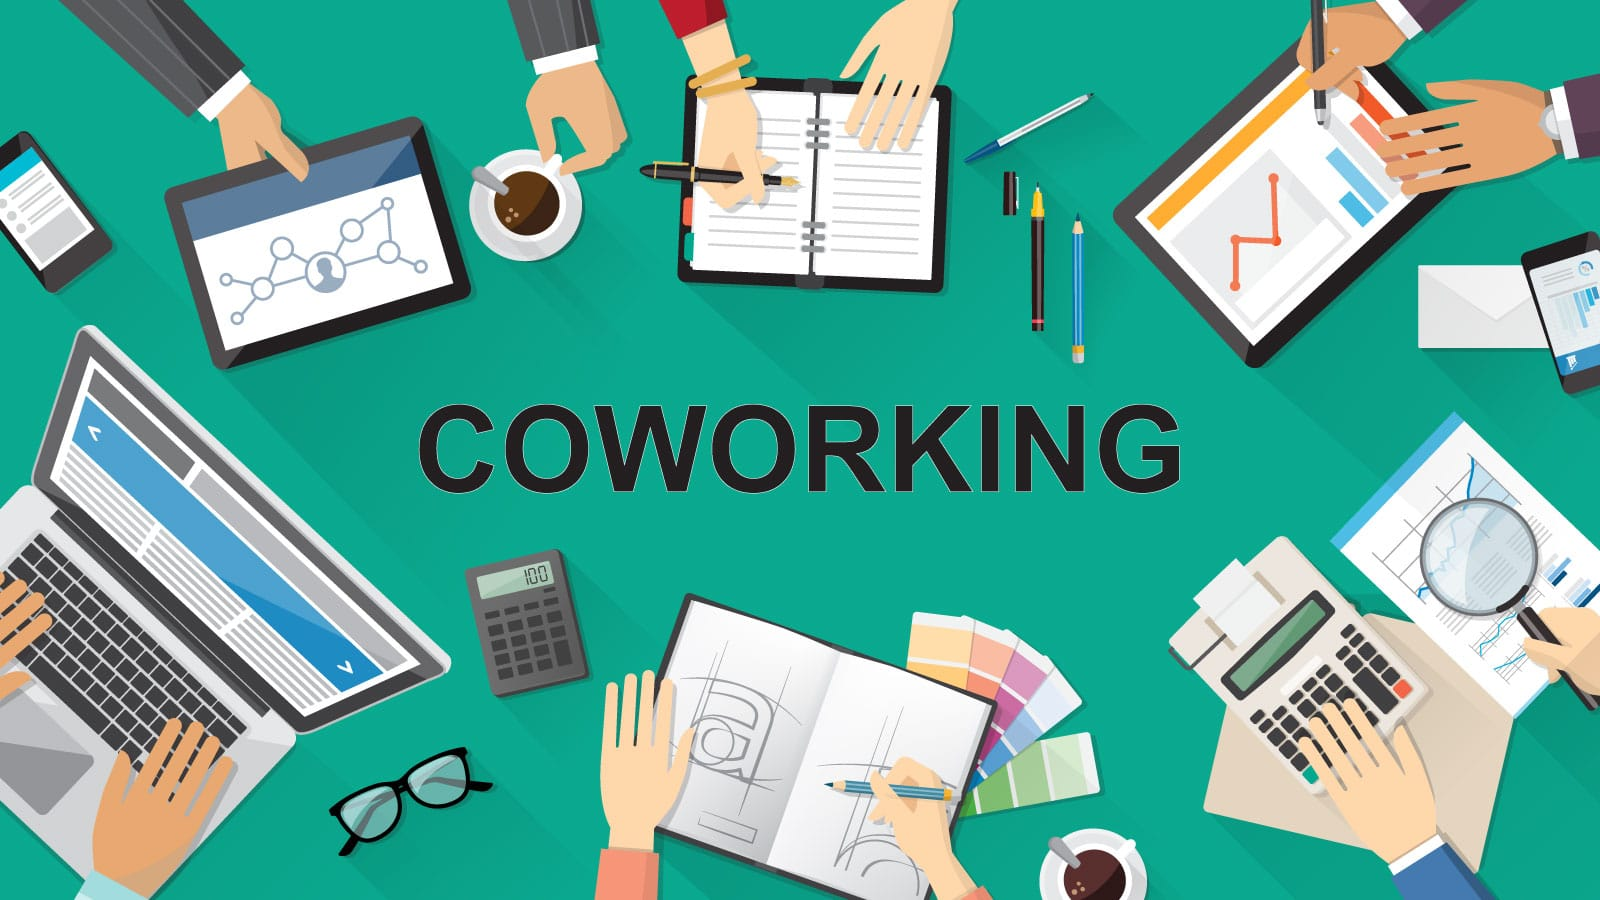 coolwork